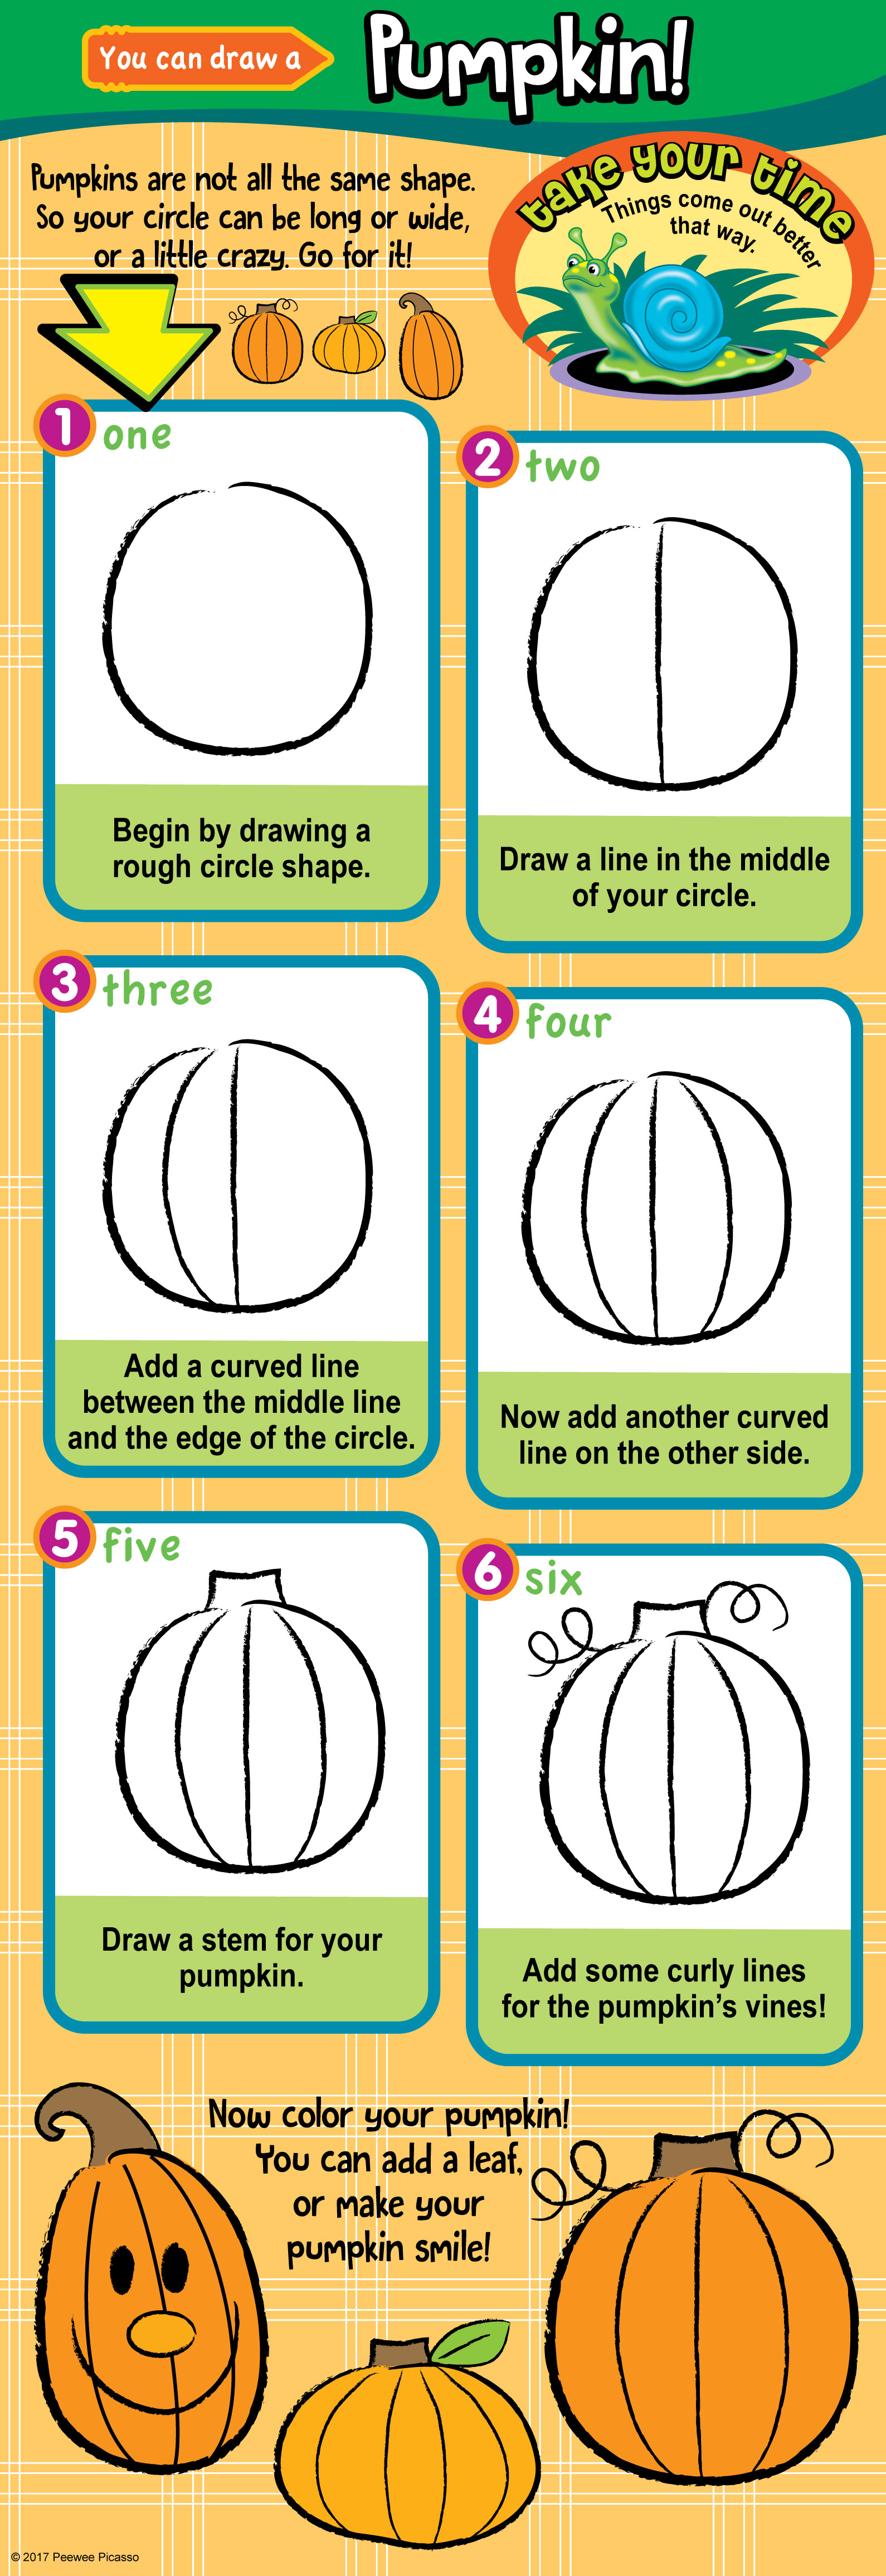 step by step instructions to draw a pumpkin for children